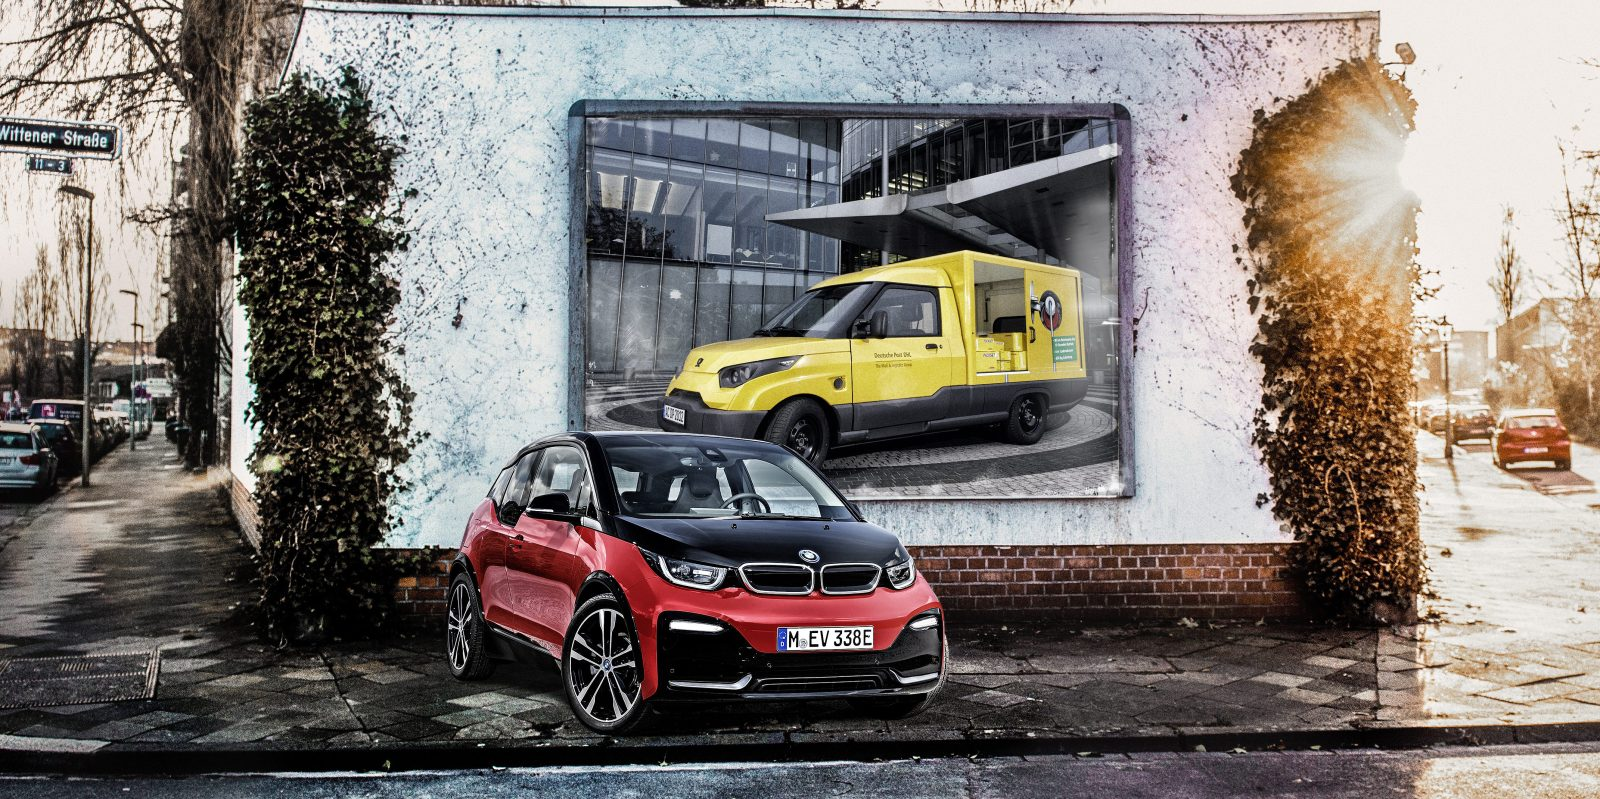 BMW is supplying i3 battery modules for DHL's electric